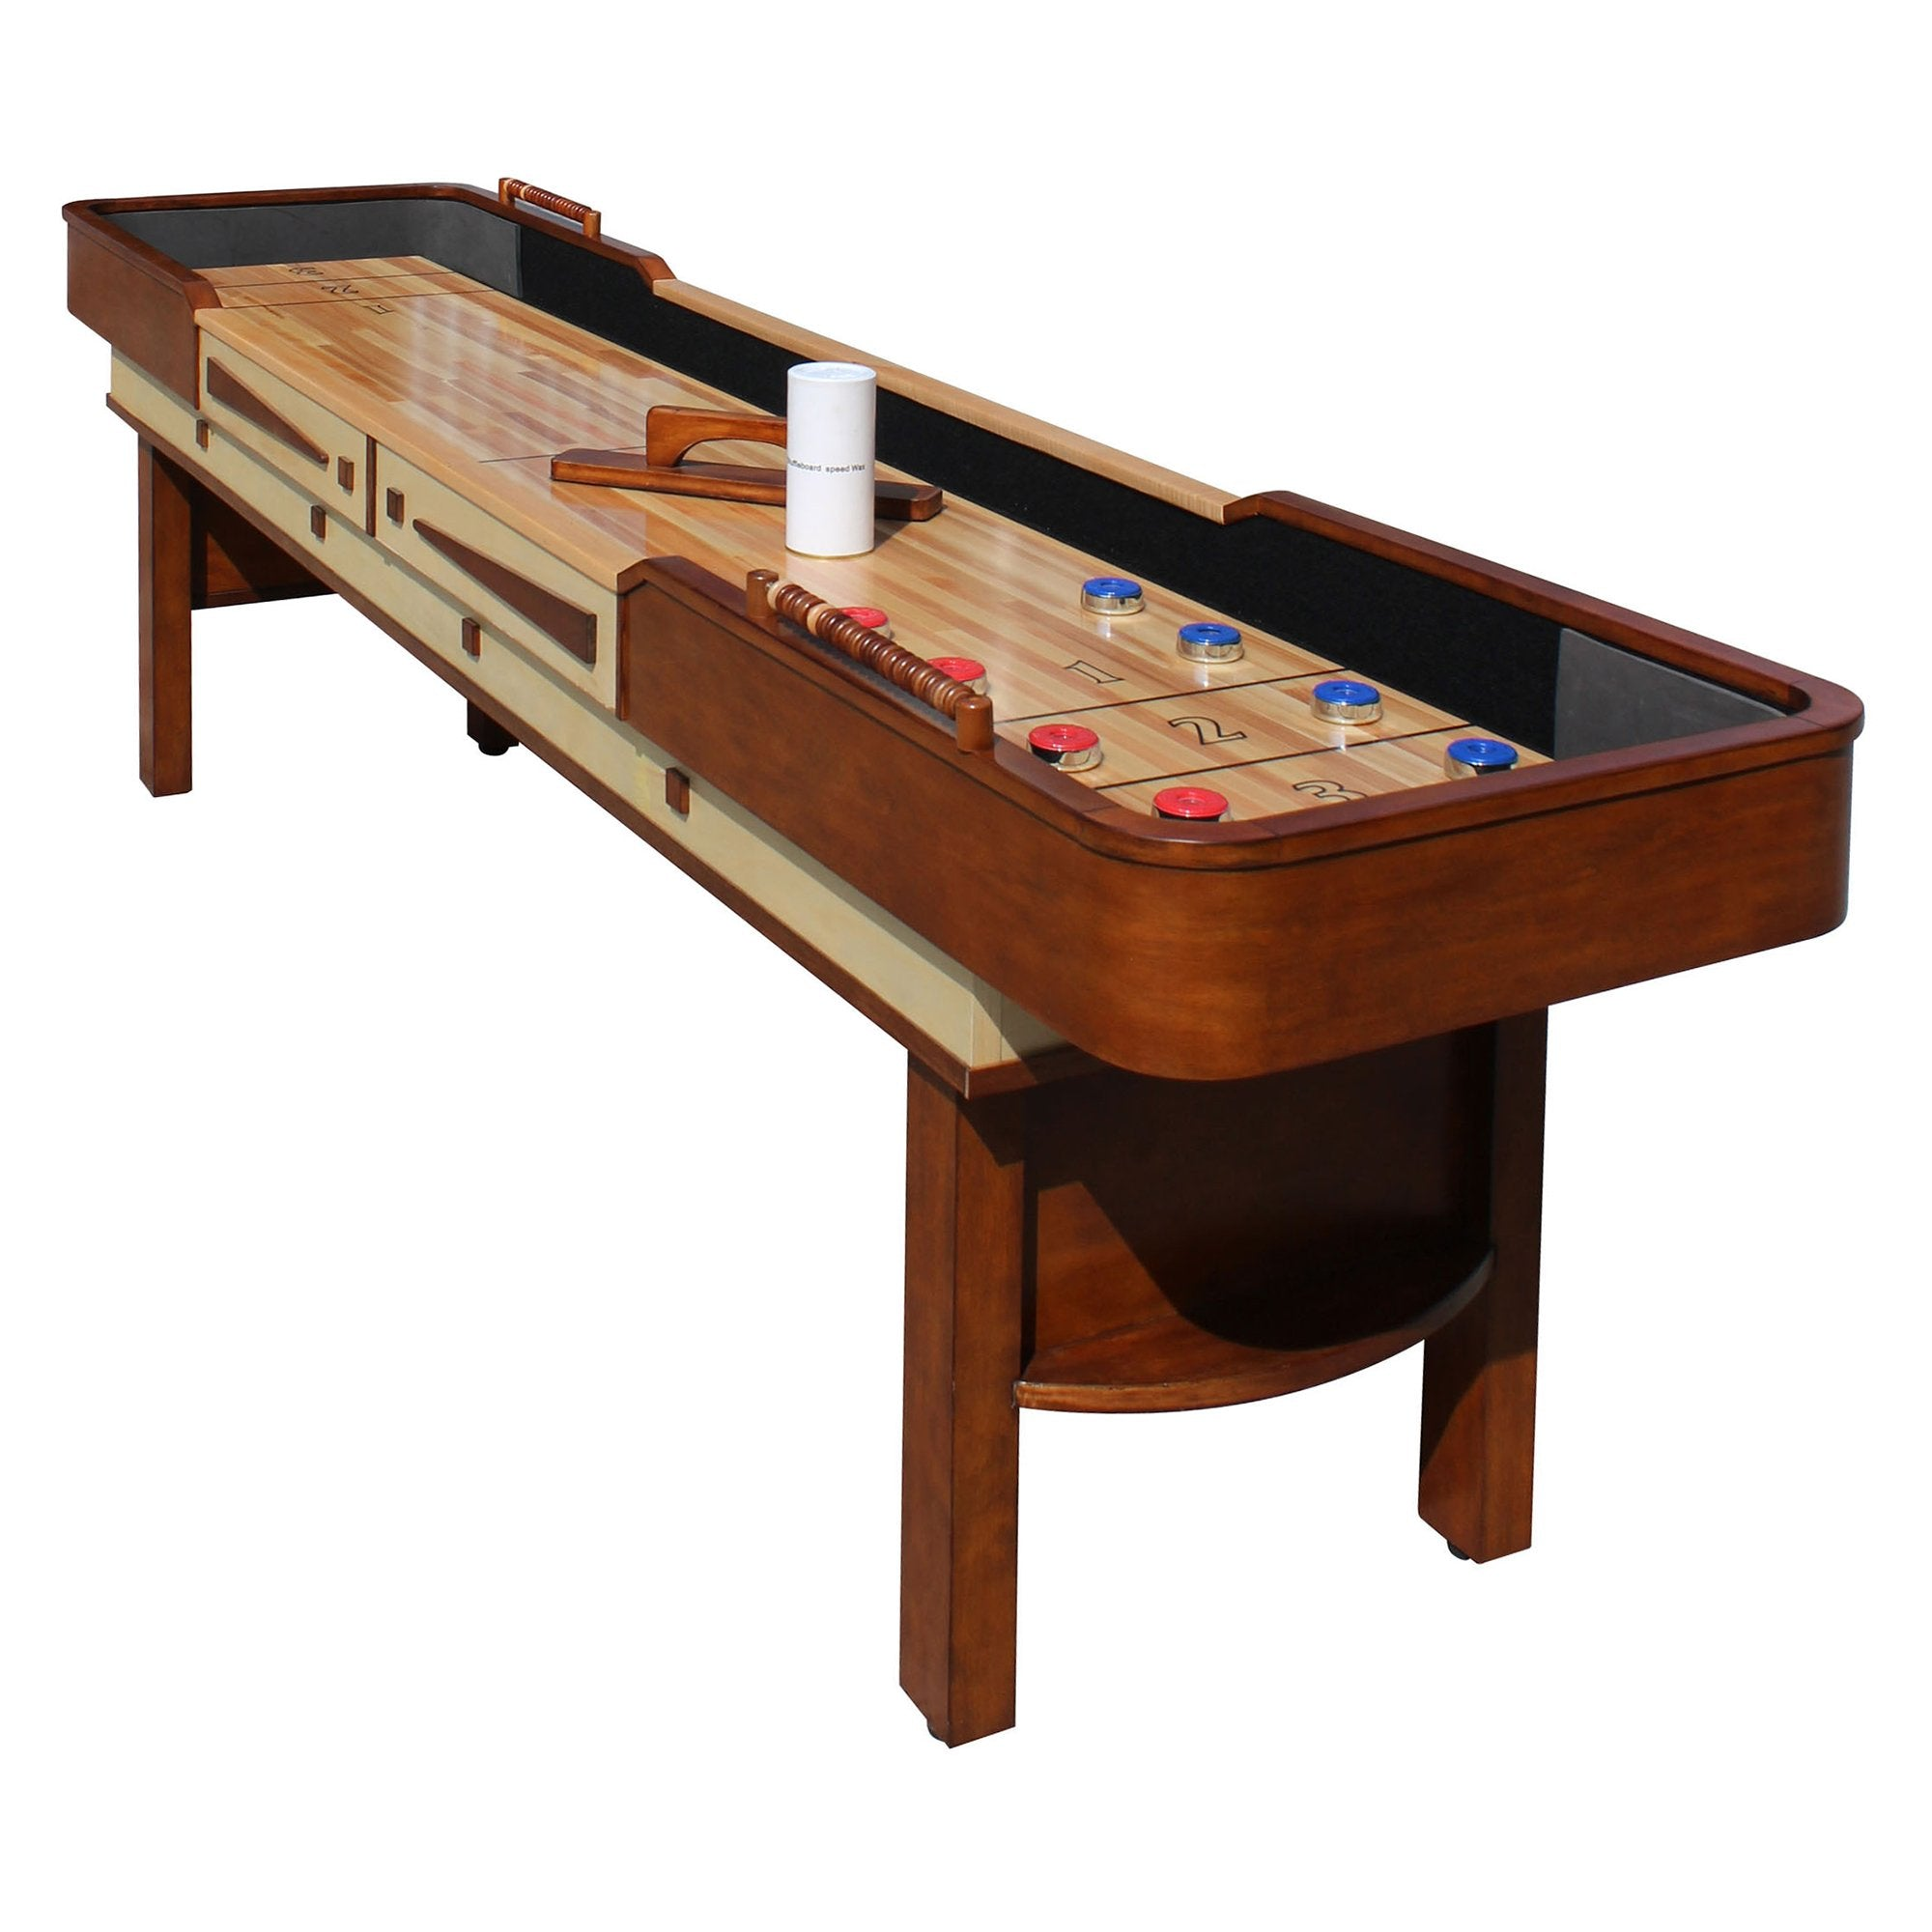 Hathaway Merlot 9ft Shuffleboard Table - Gaming Blaze